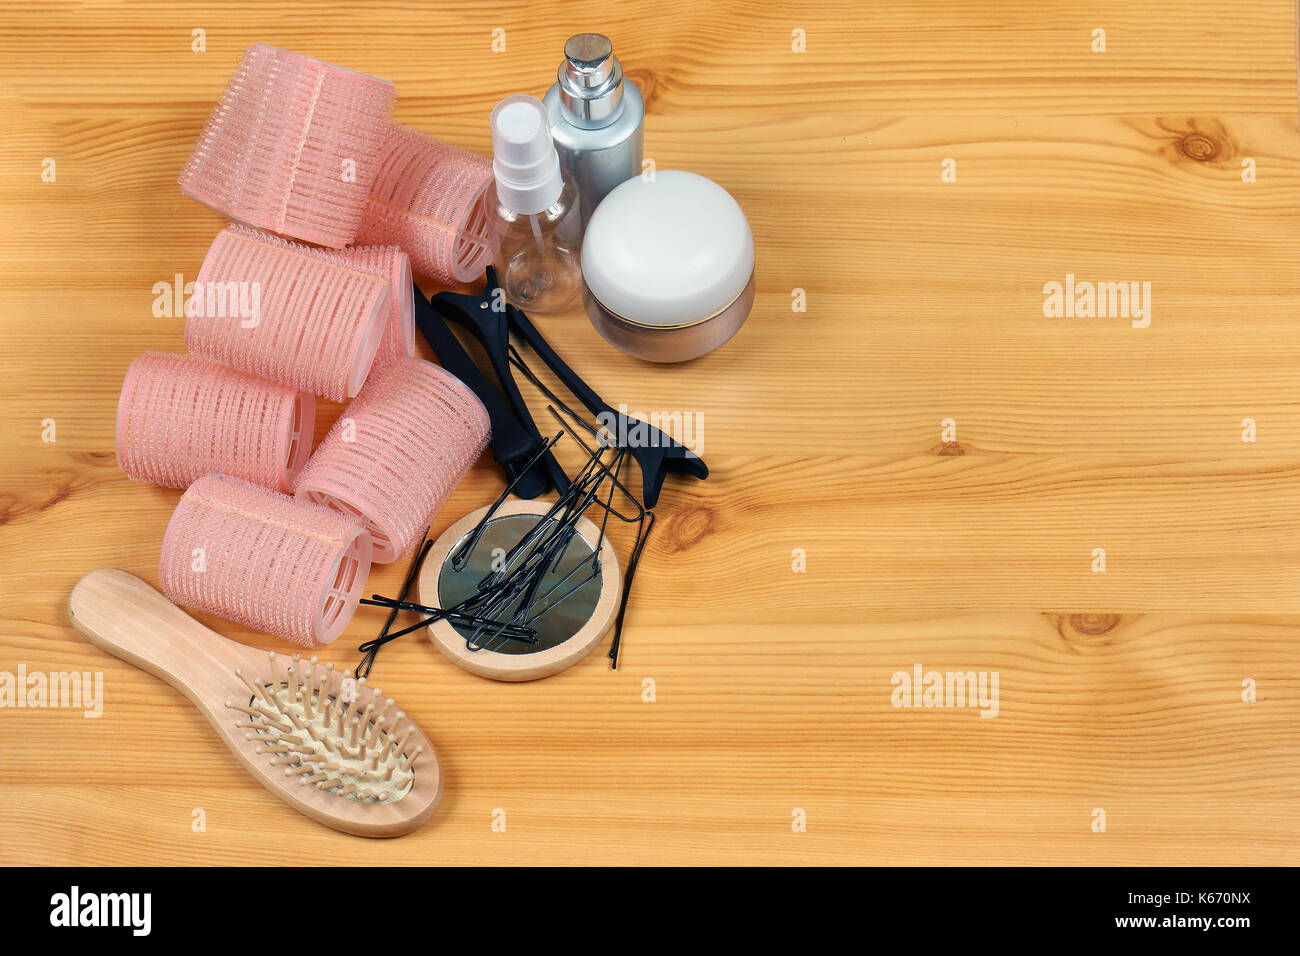 Hair velcro curlers set with other accessories for making hairstyle - Stock Image